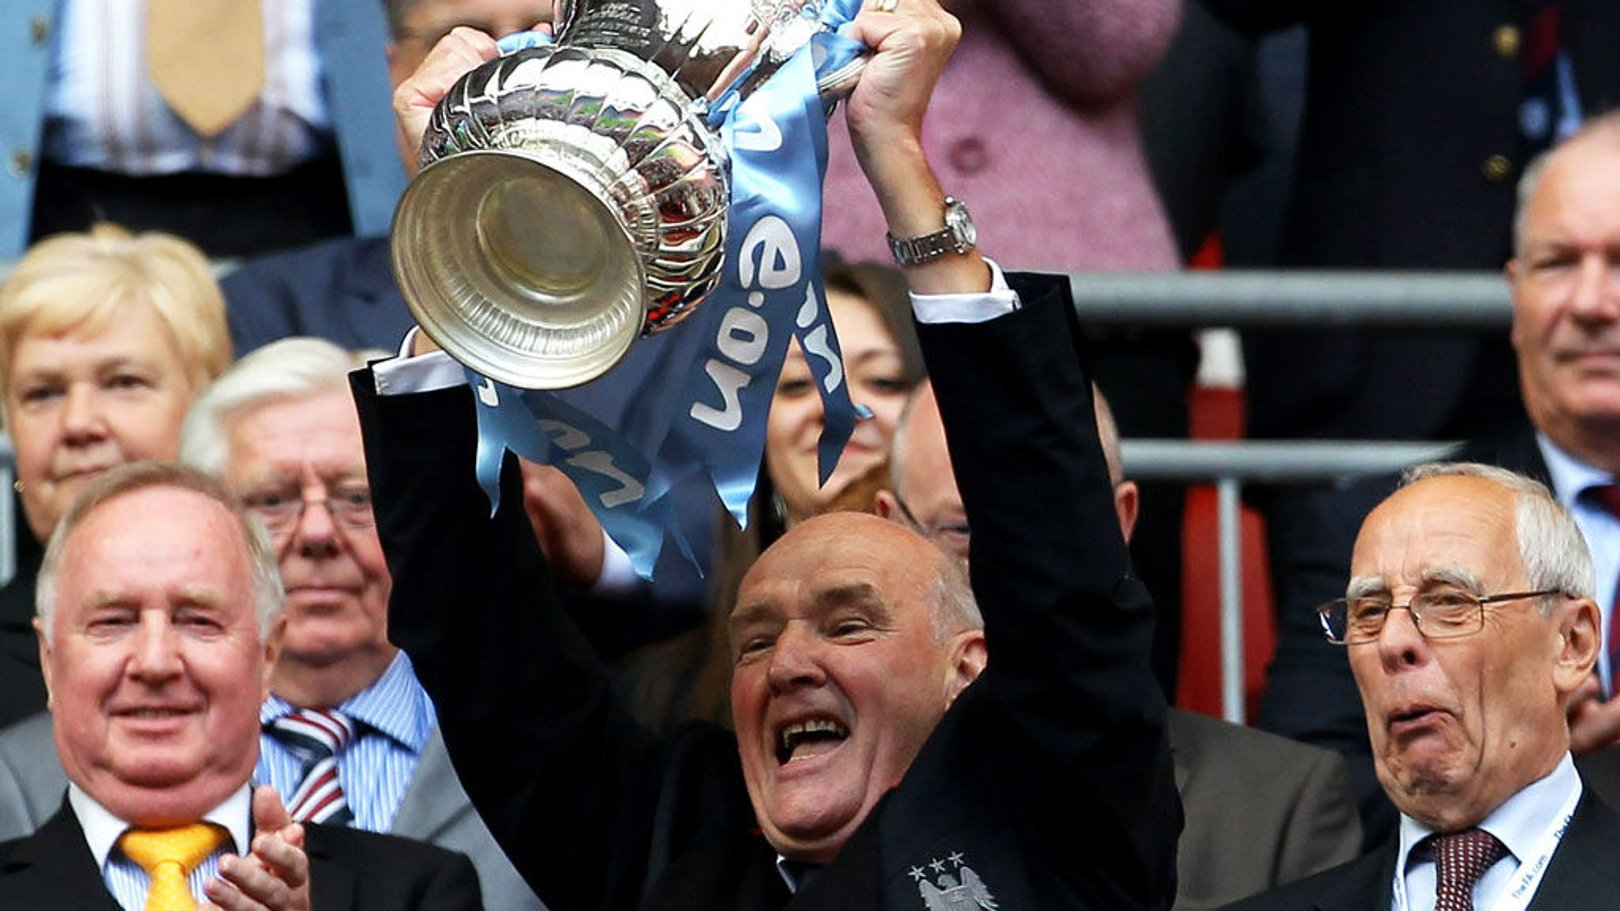 MAGIC MOMENT: Bernard lifts the FA Cup aloft after our memorable Wembley triumph over Stoke back in 2011